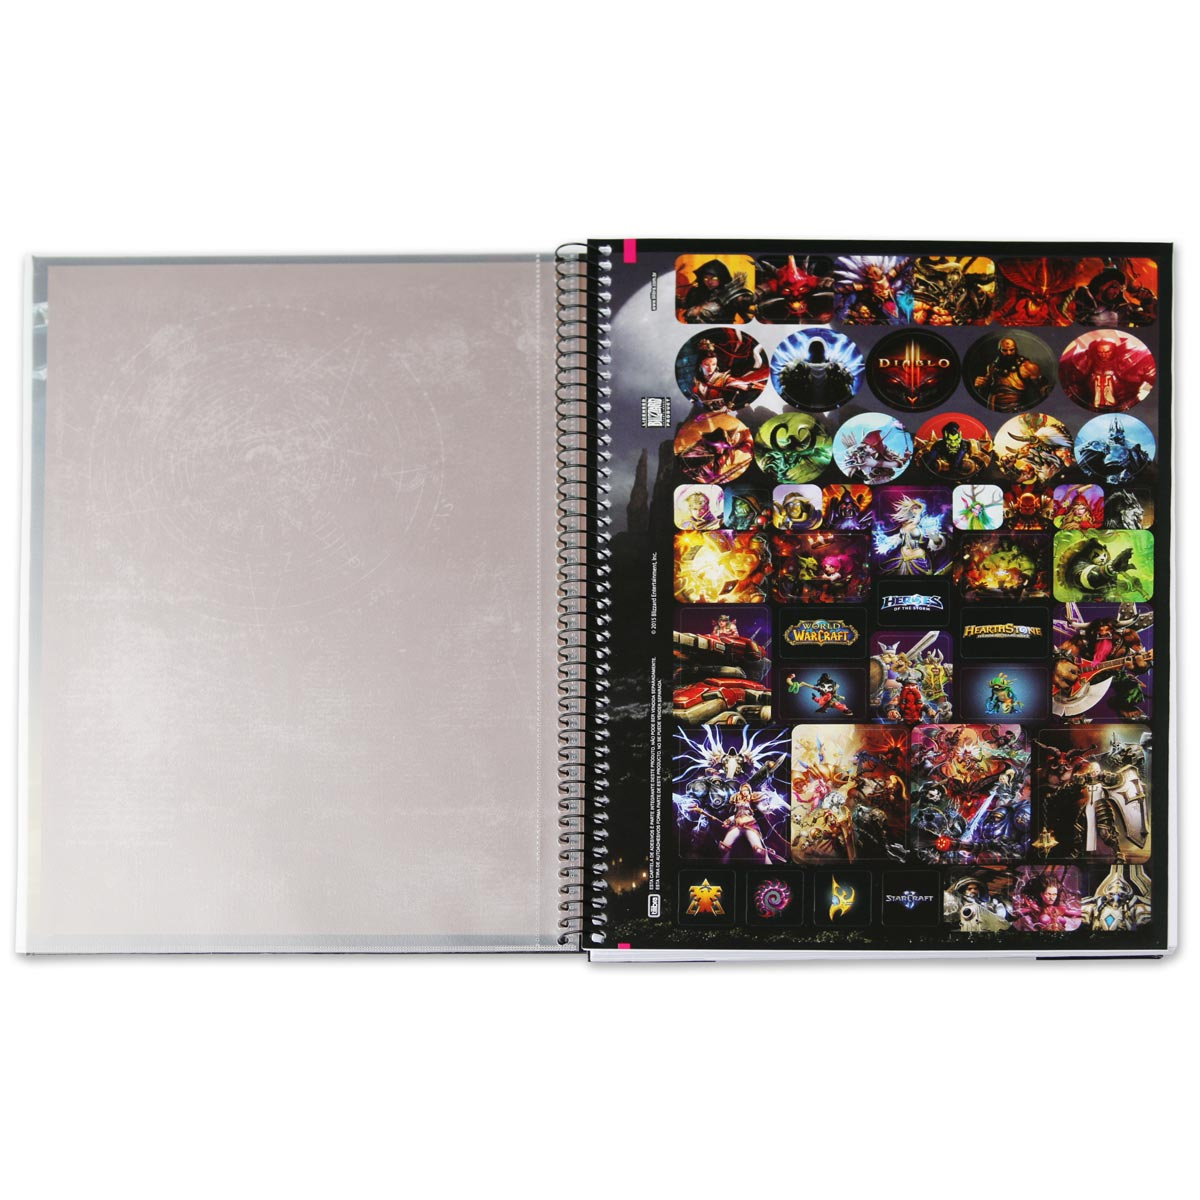 Caderno Heroes Of The Storm Johana 10 Matérias